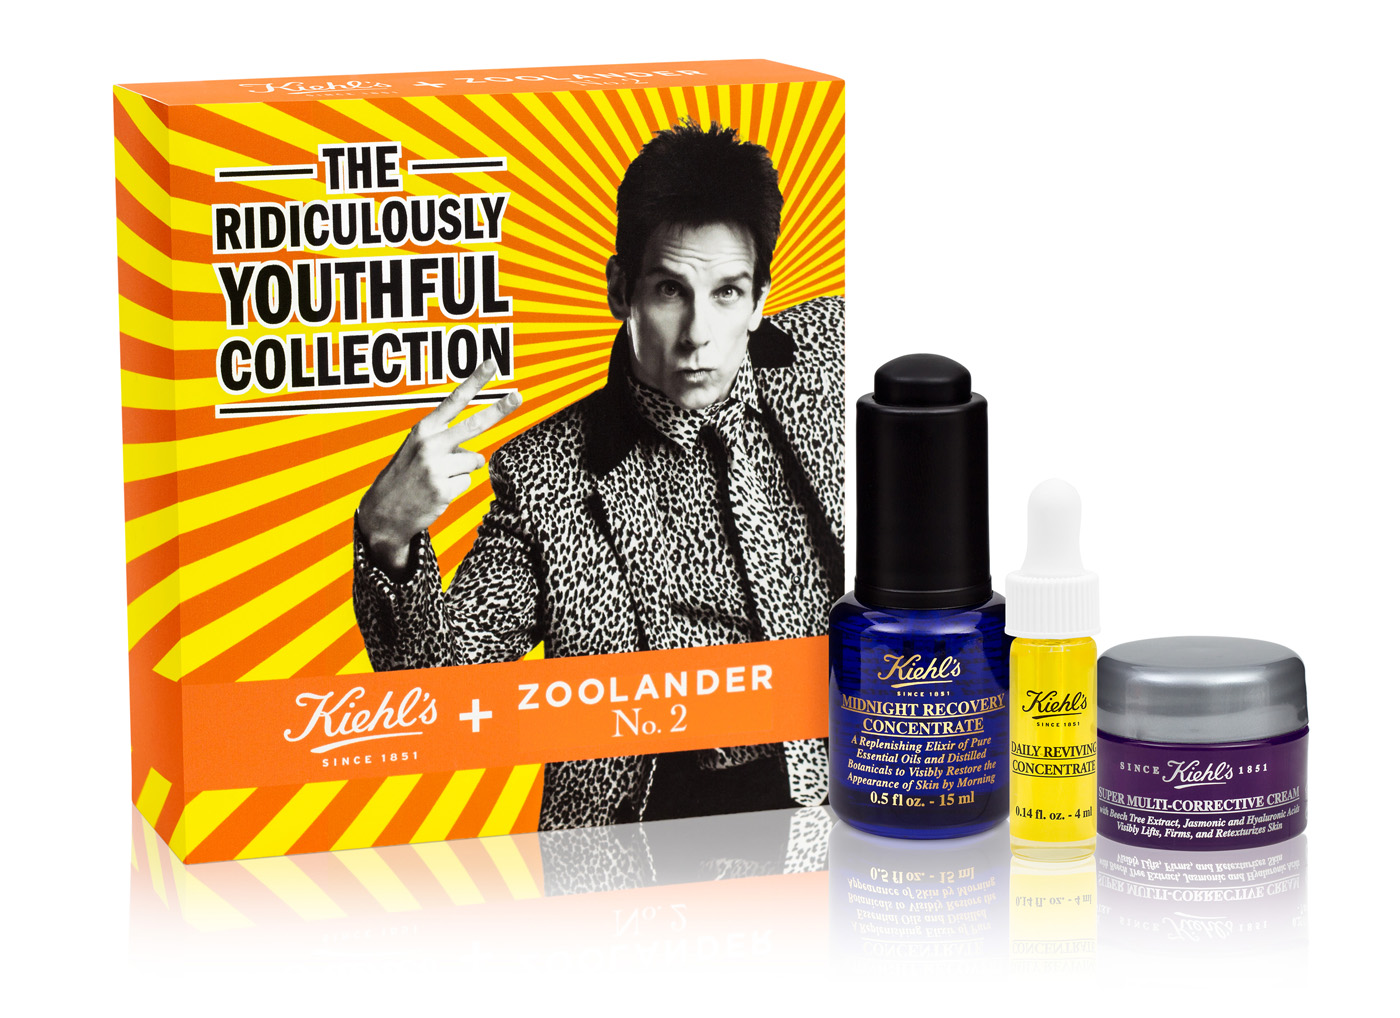 KIEHL'S X ZOOLANDER2 Limited Edition copia